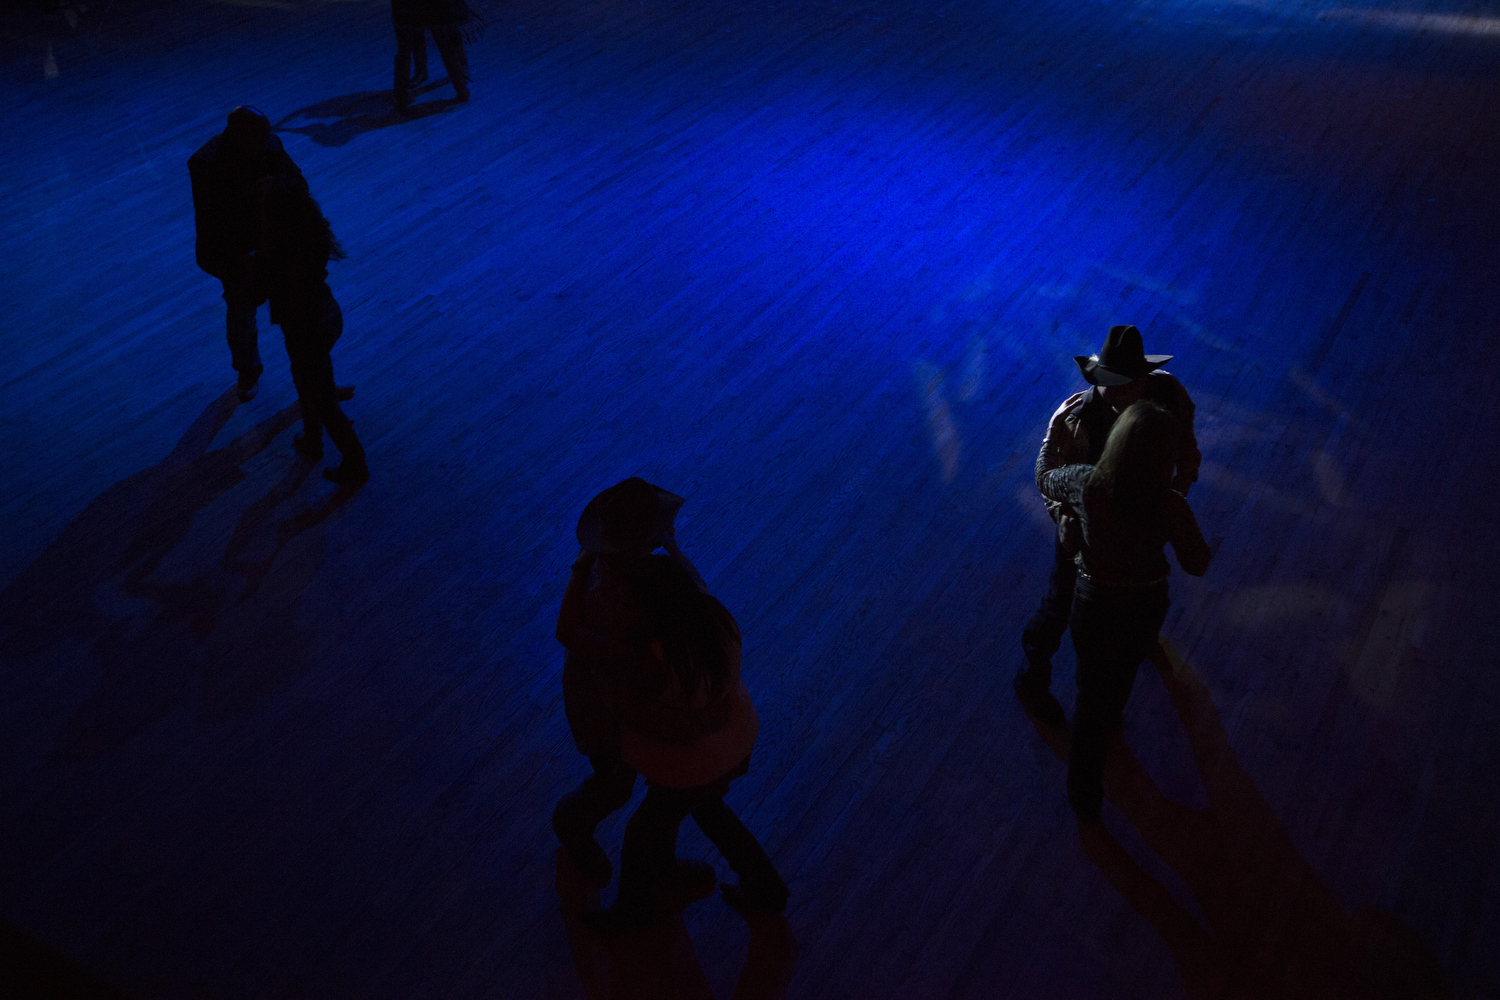 Several people dance to a live country music performance by the Sunset Riders at the Cowboy Dance Hall in San Antonio, TX on Friday, January 30, 2015 after the annual Cowboy Breakfast.